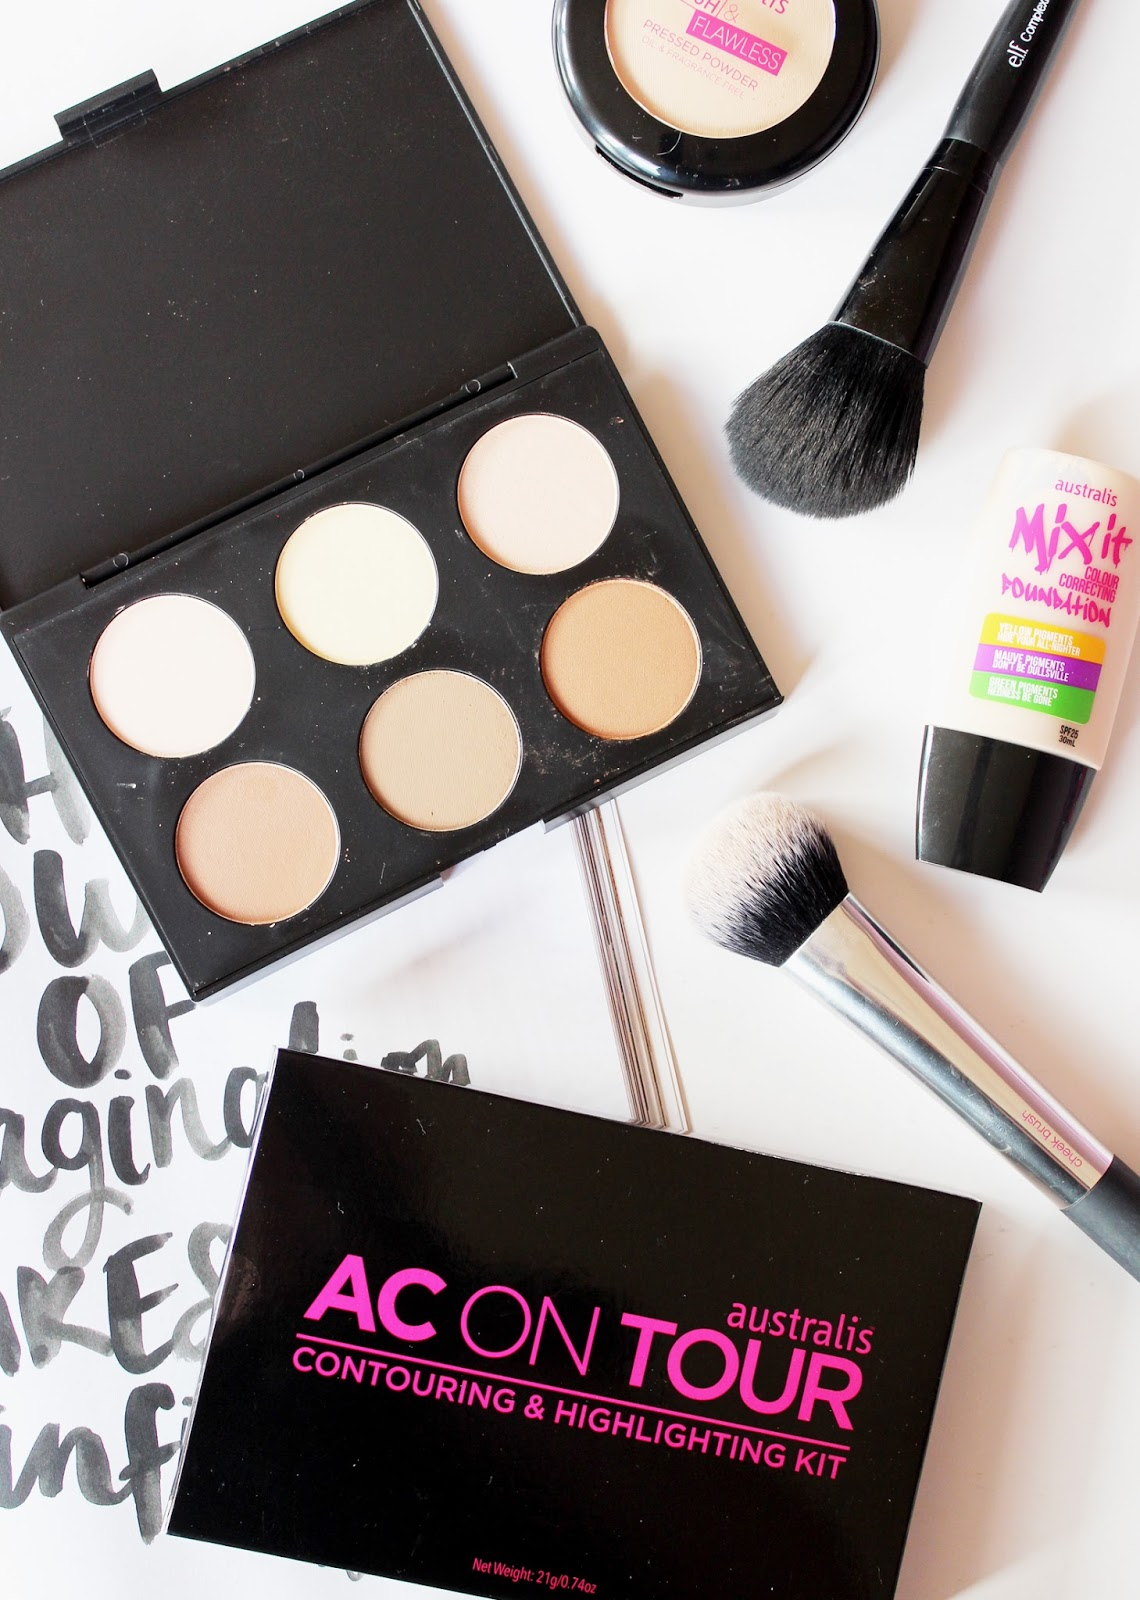 AUSTRALIS | AC On Tour Contouring + Highlighting Kit - Review + Swatches - CassandraMyee